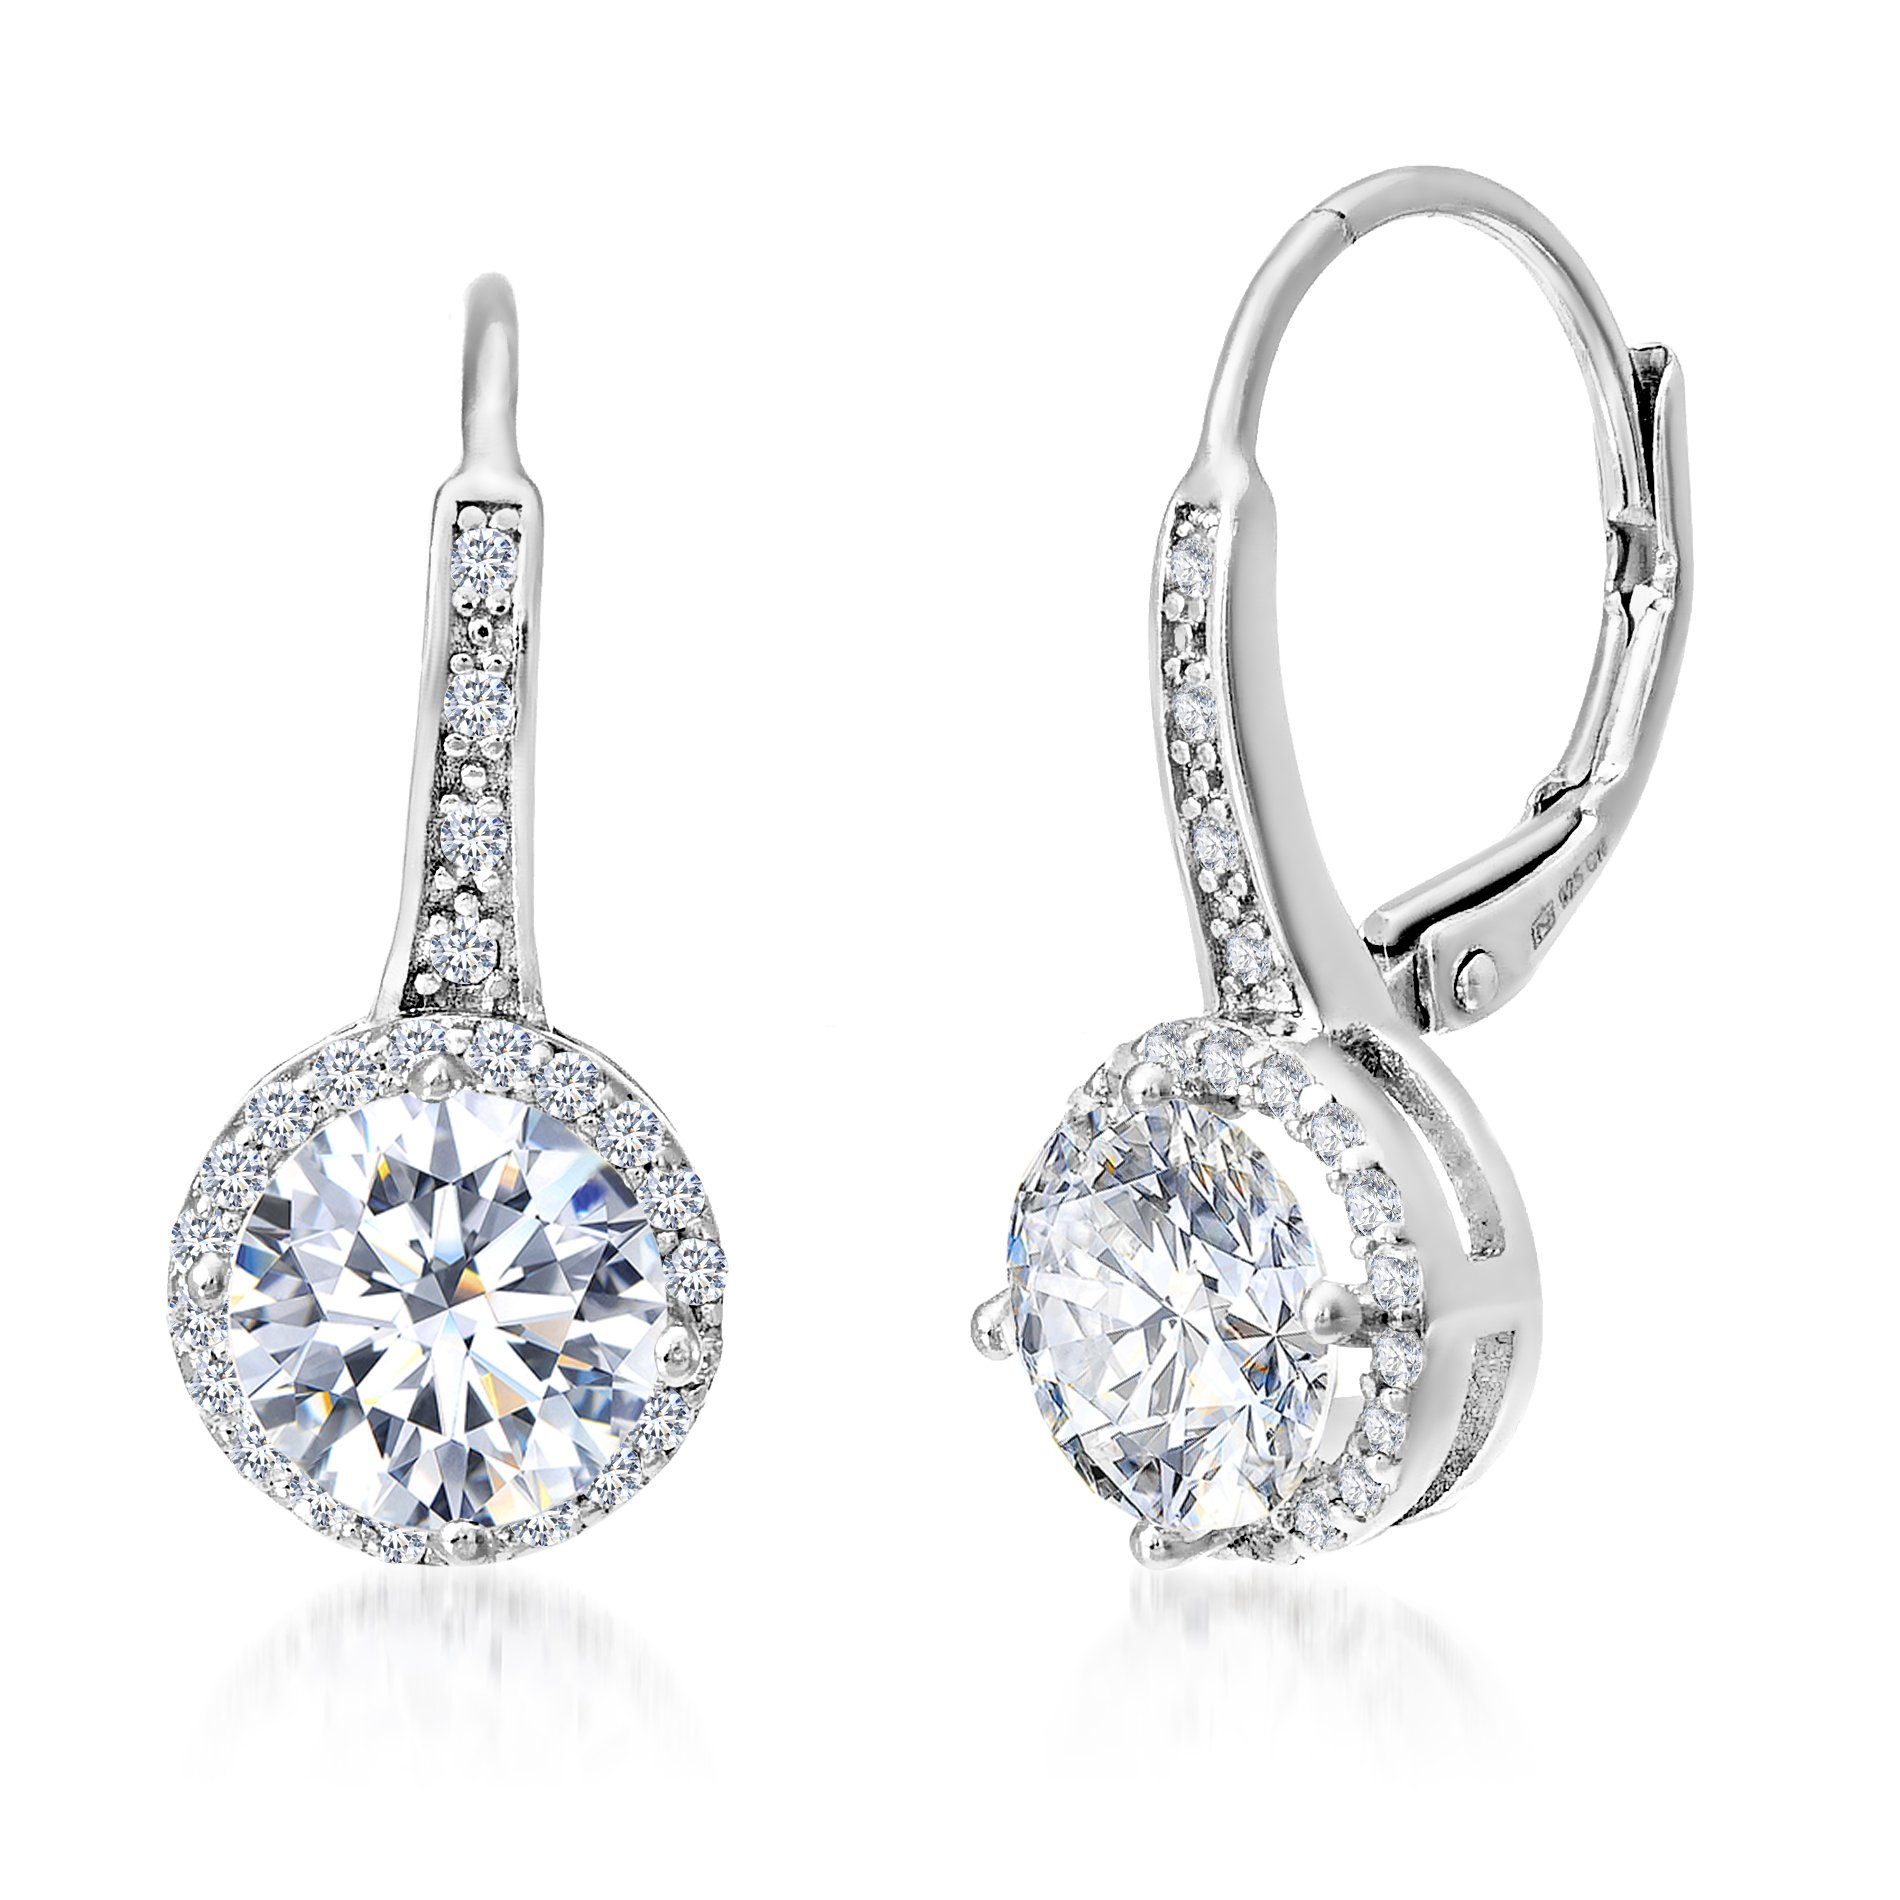 Mia Sarine Women Cubic Zirconia Halo Leverback Dangle Earring in Rhodium over Sterling Silver